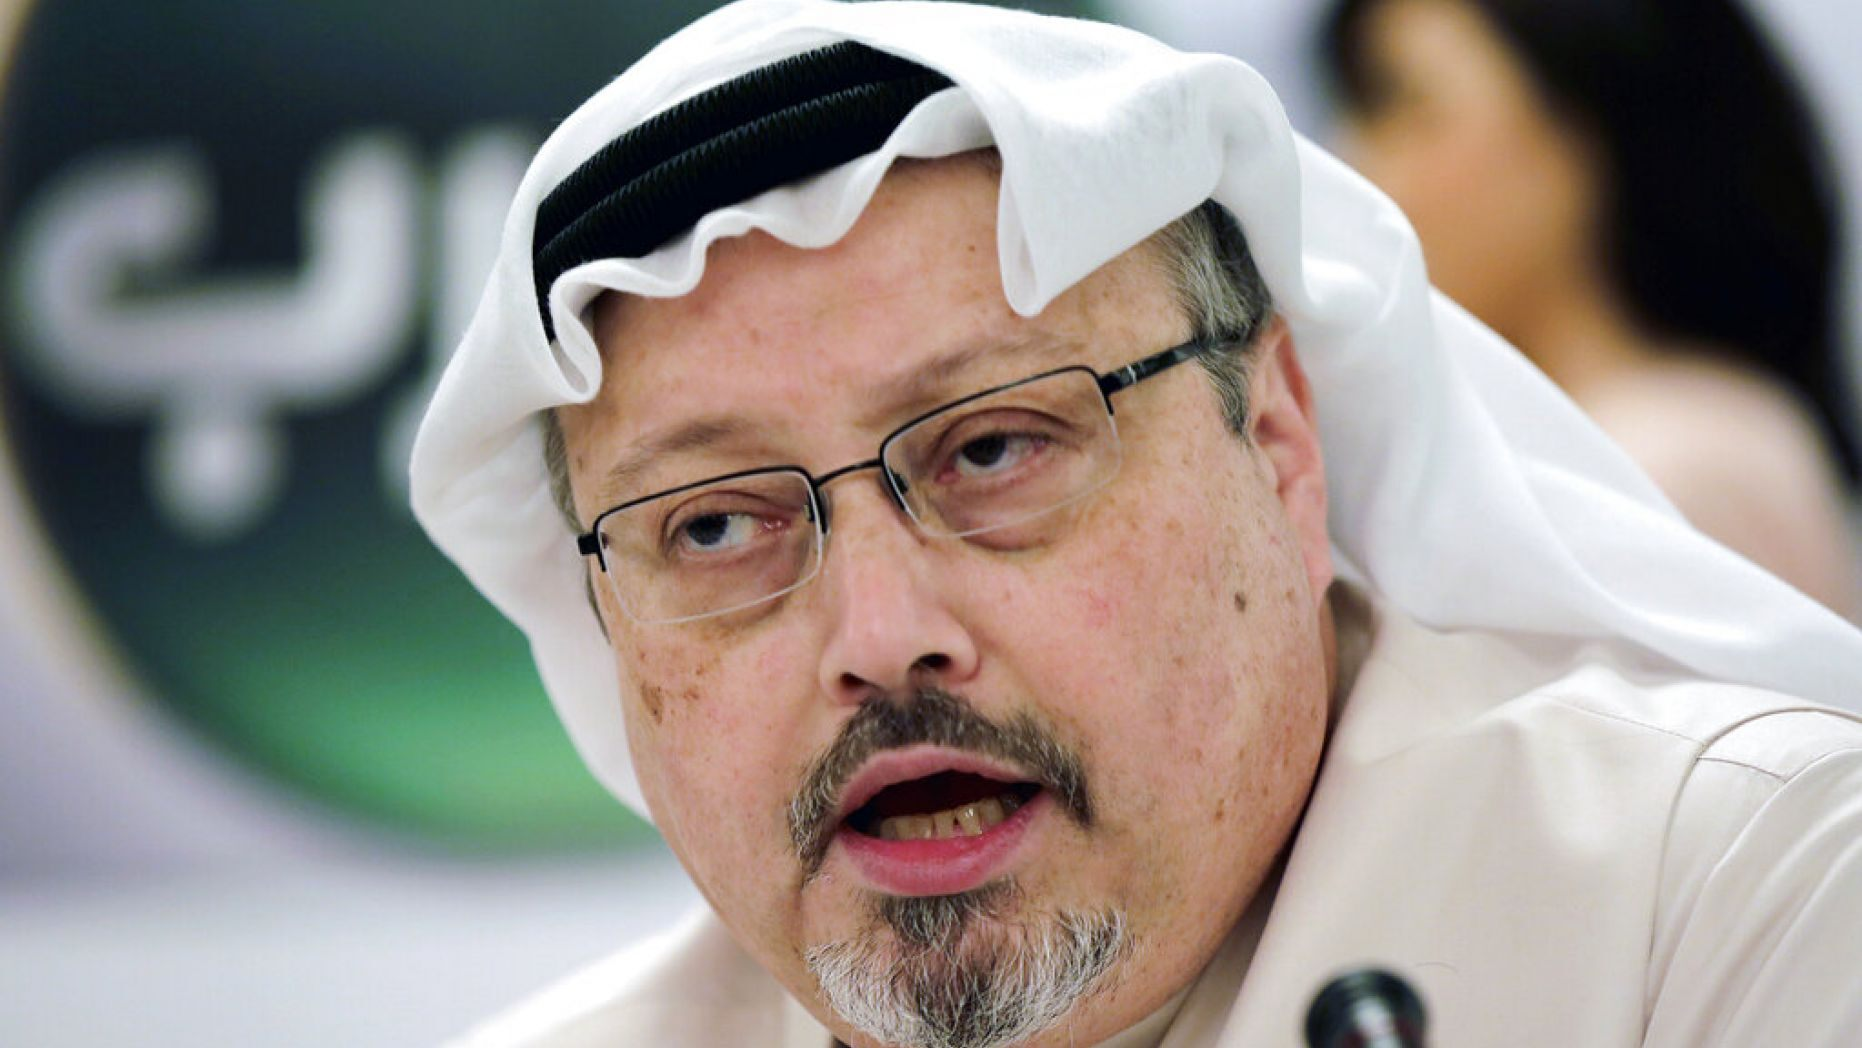 In this Dec. 15, 2014, file photo, Saudi journalist Jamal Khashoggi speaks during a news conference in Manama, Bahrain.